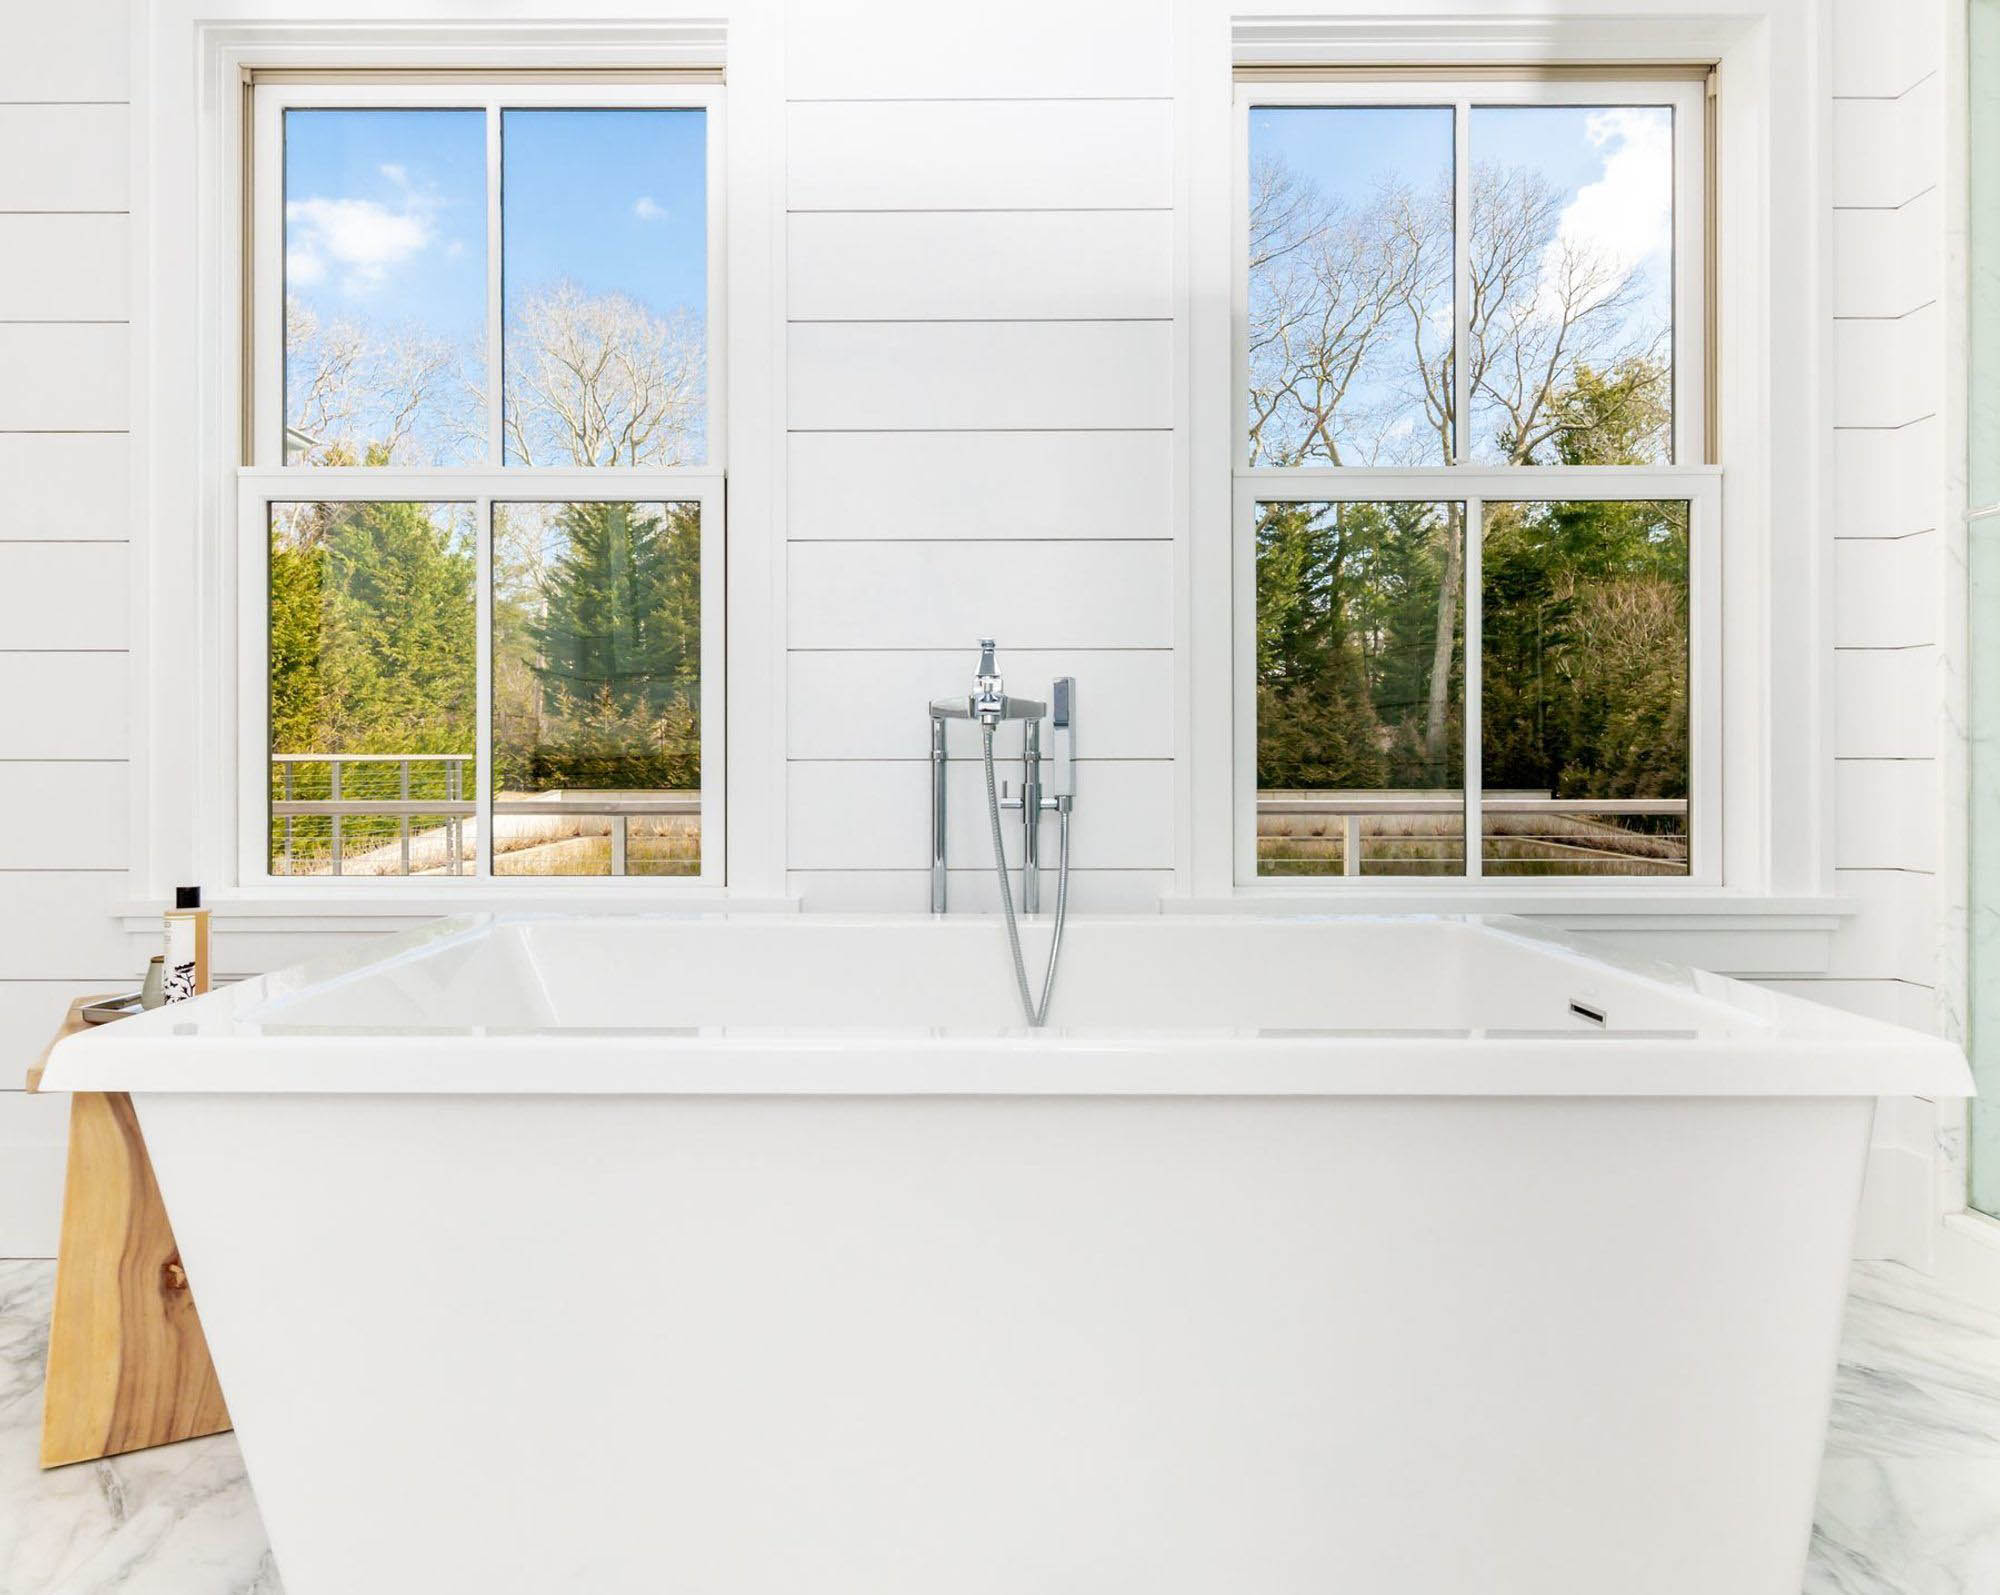 Modern marble bathroom with shiplap wall trim. White paneling and trim work. Large rectangle soaking tub with chrome faucet.